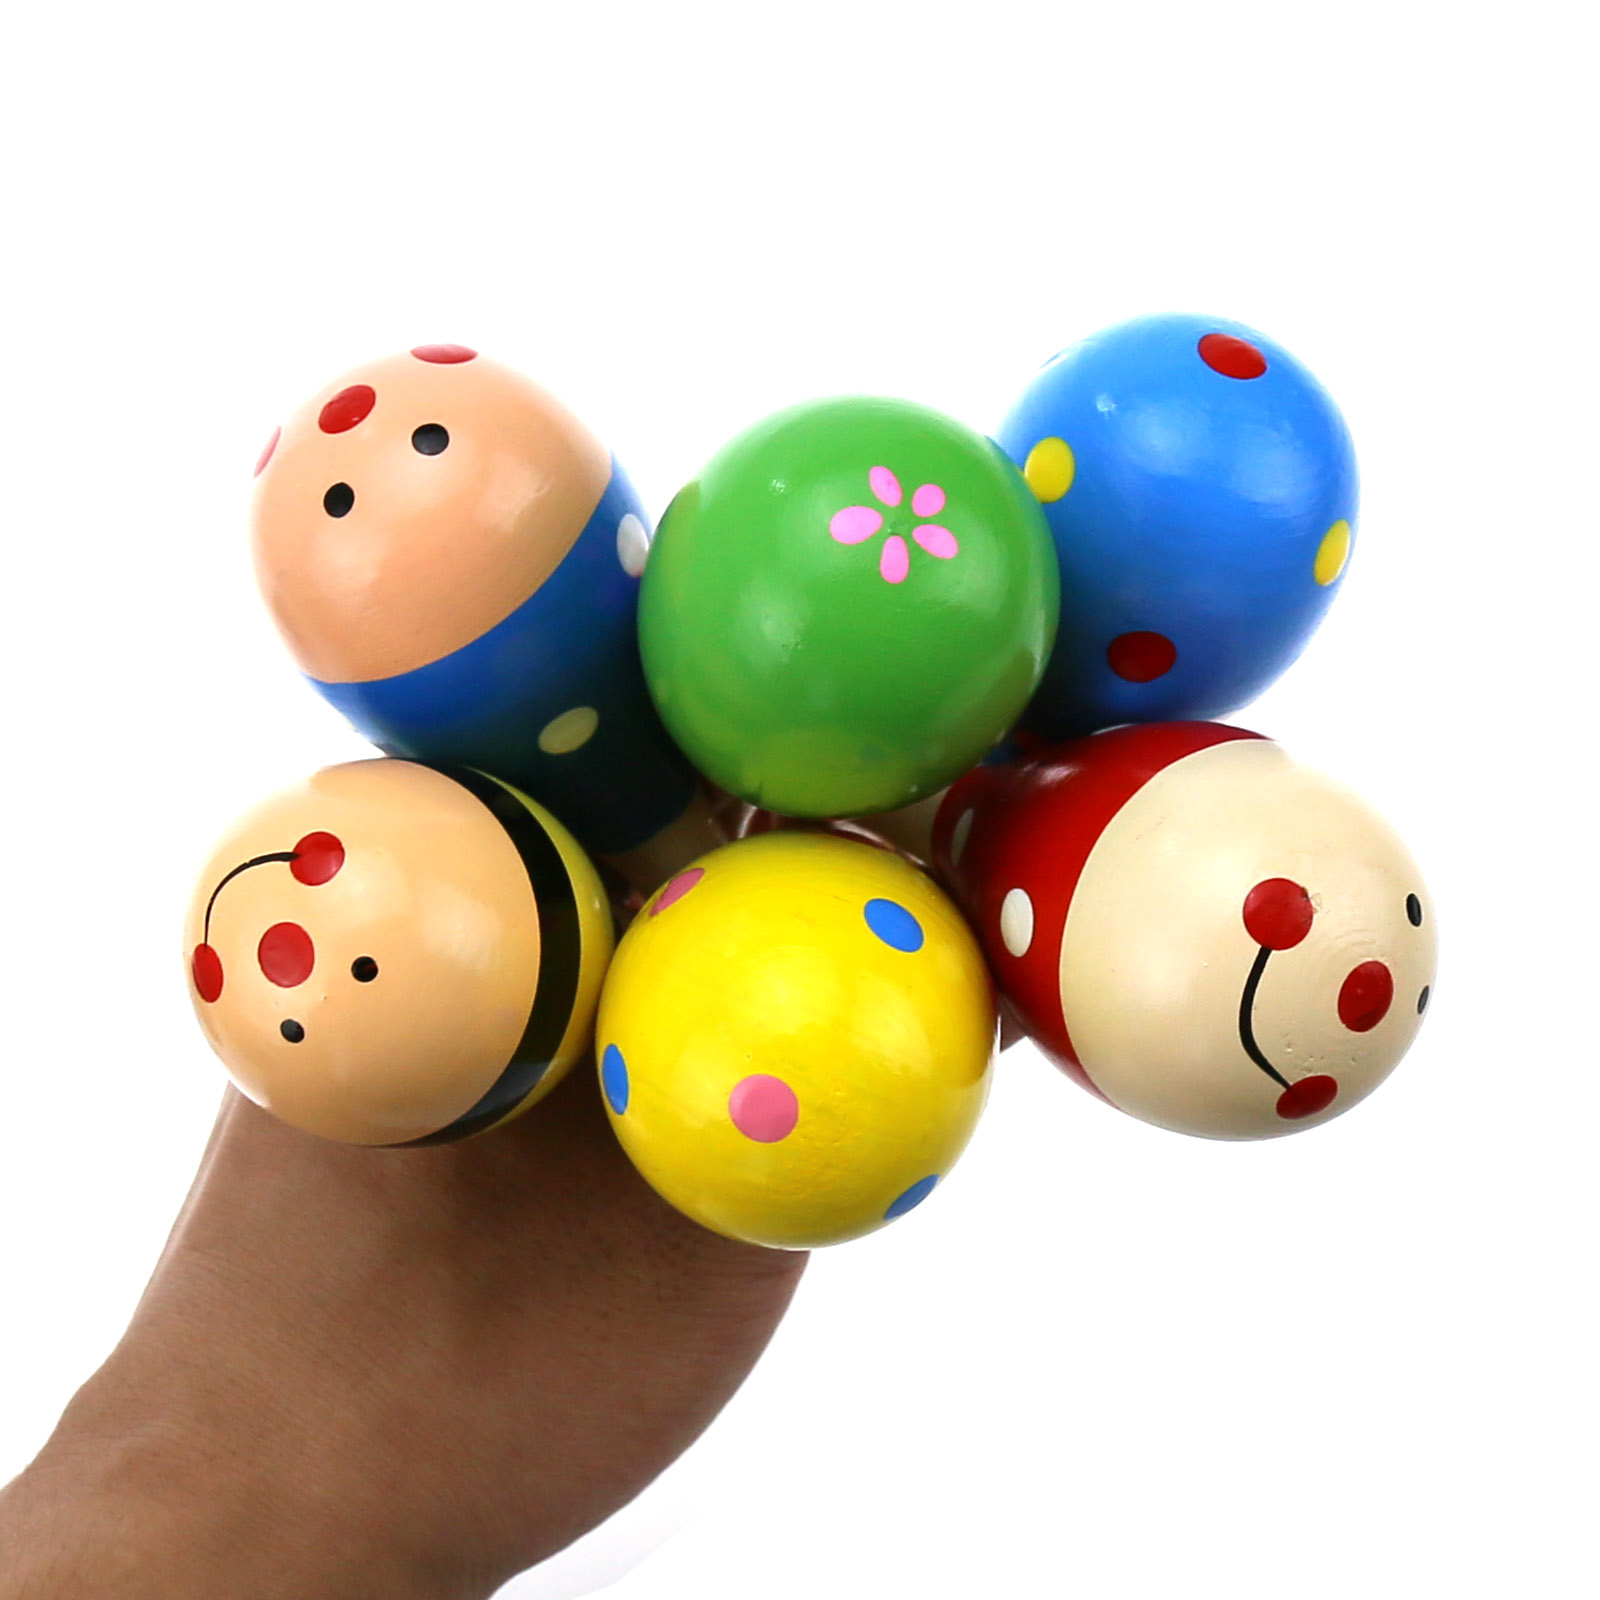 Sell Well 1cps Infant Fancy Toy Small Wooden Sand Hammer Grip  Kids Exercises Musical Instruments Hand Ball Gifts Random Color